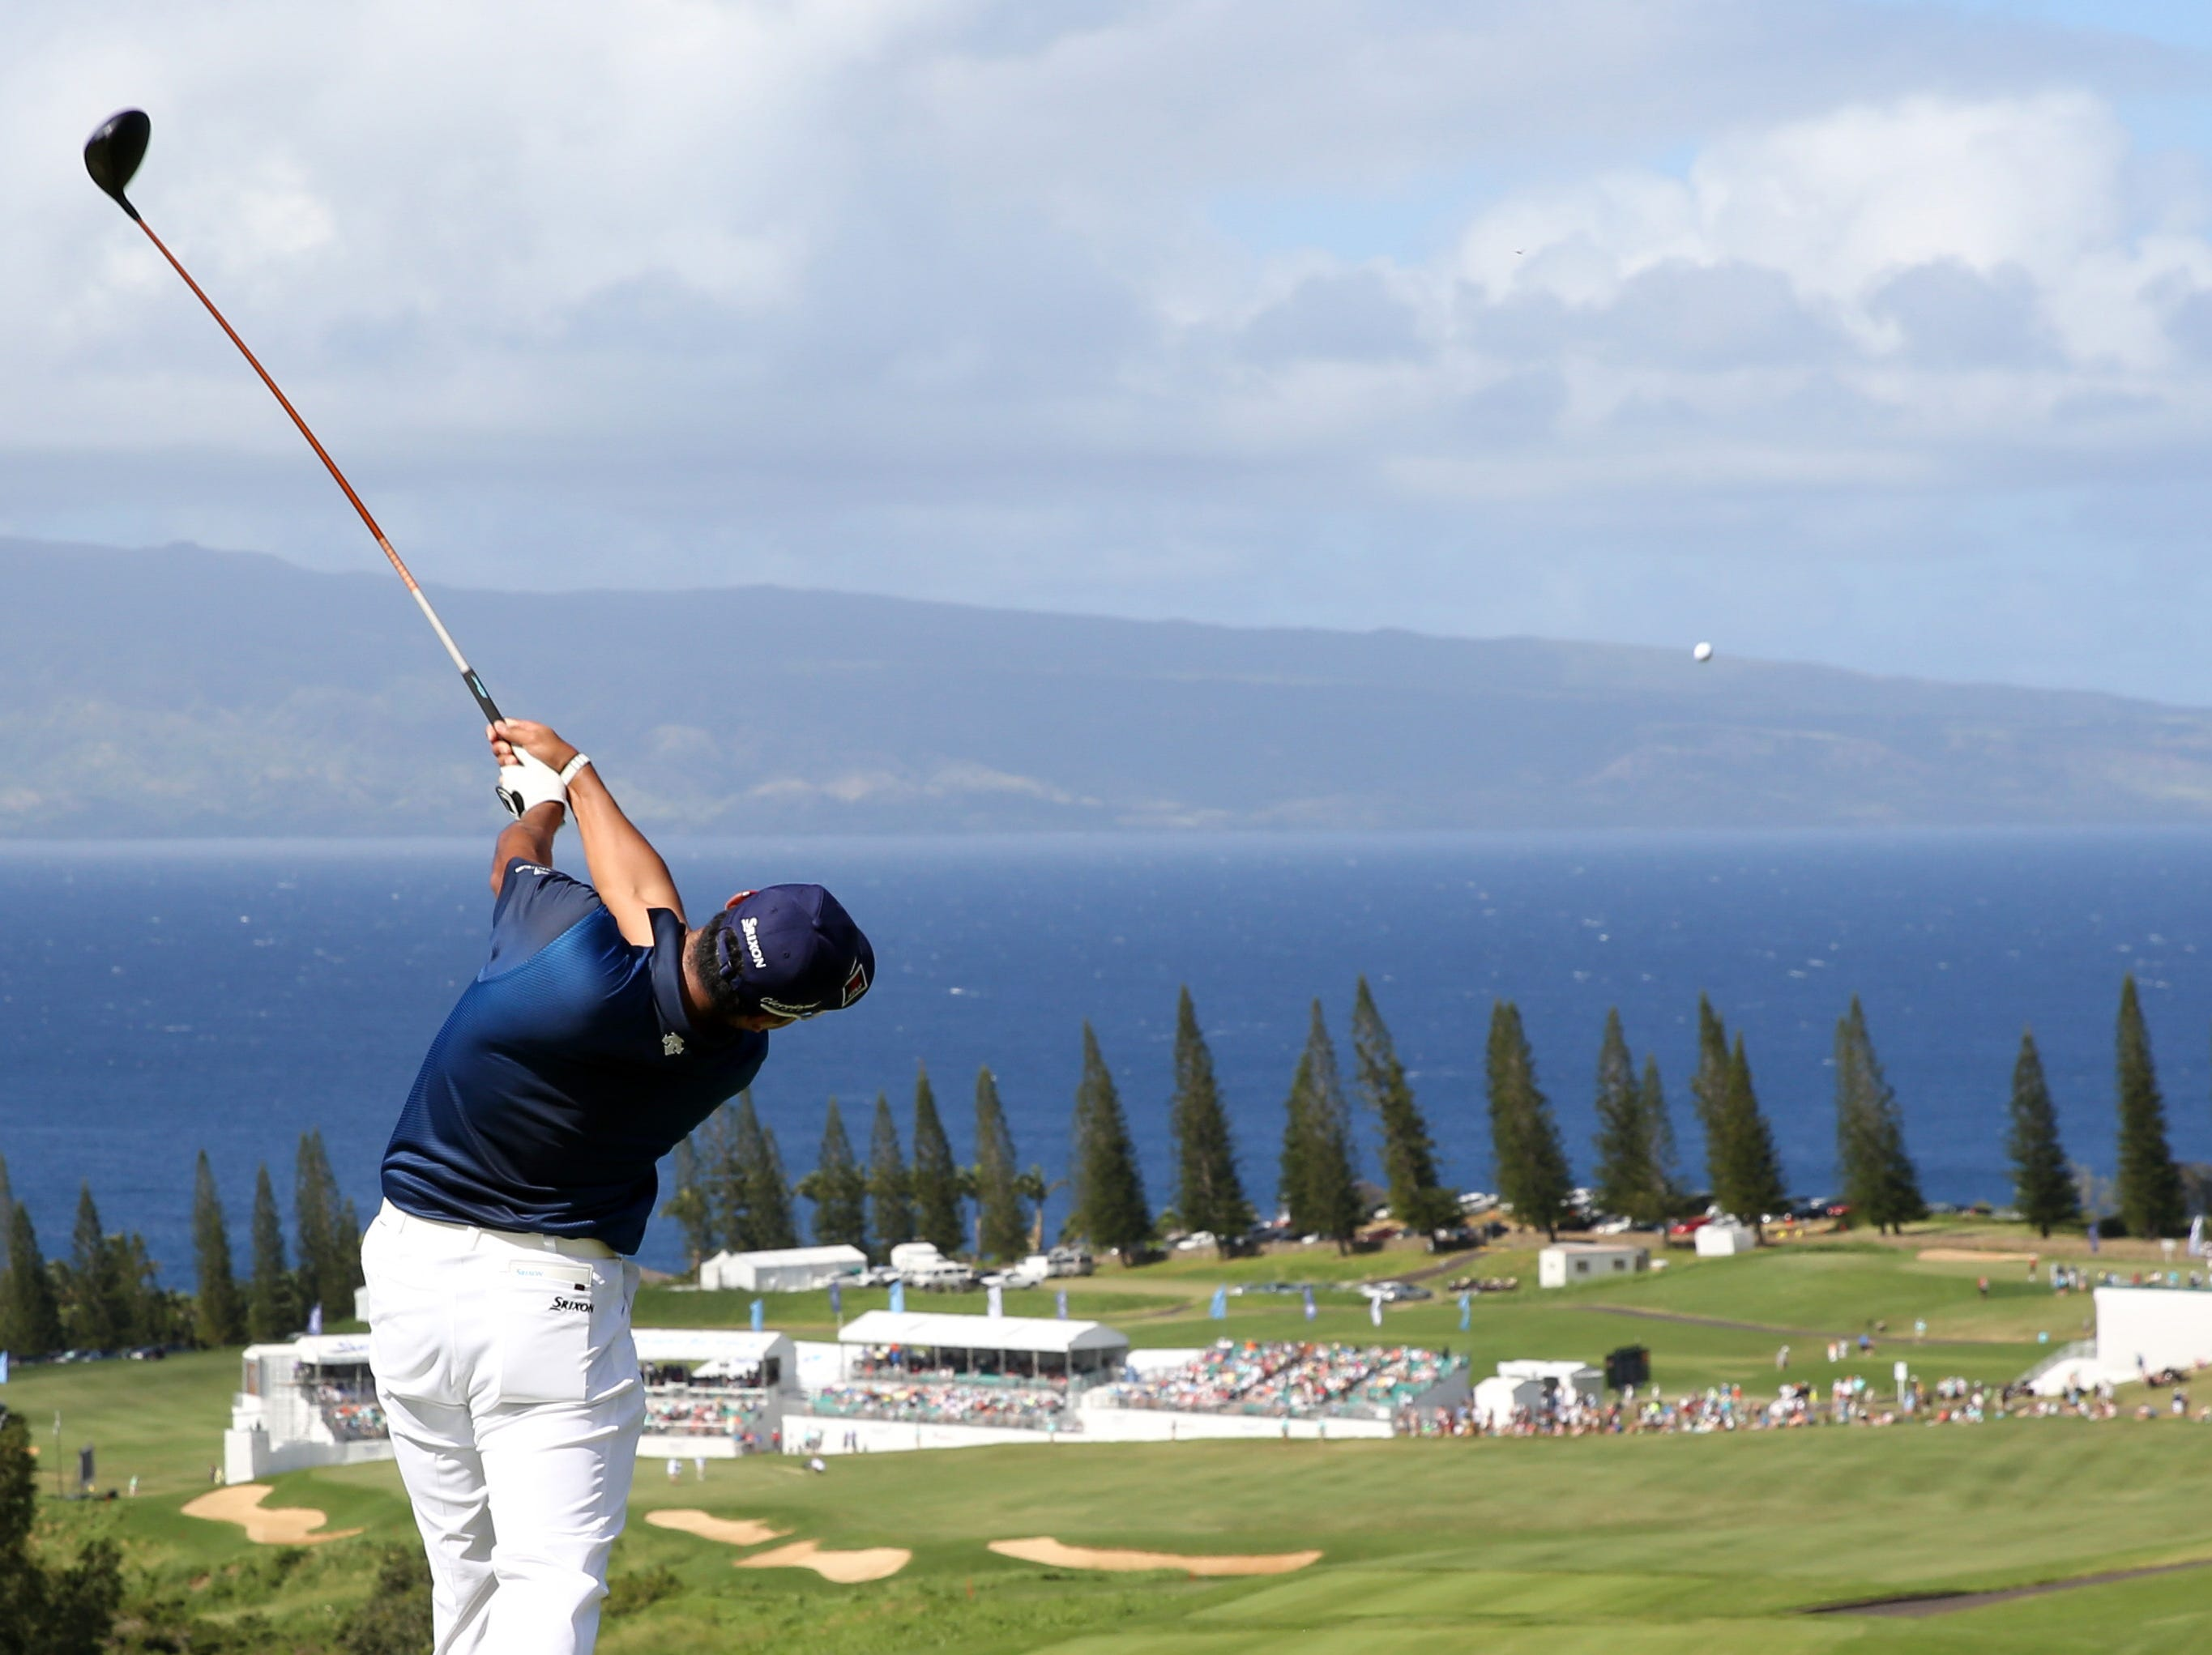 Jan. 6: Hideki Matsuyama tees off on the 18th hole during the third round of the Sentry Tournament of Champions golf tournament at Kapalua Resort - The Plantation Course.